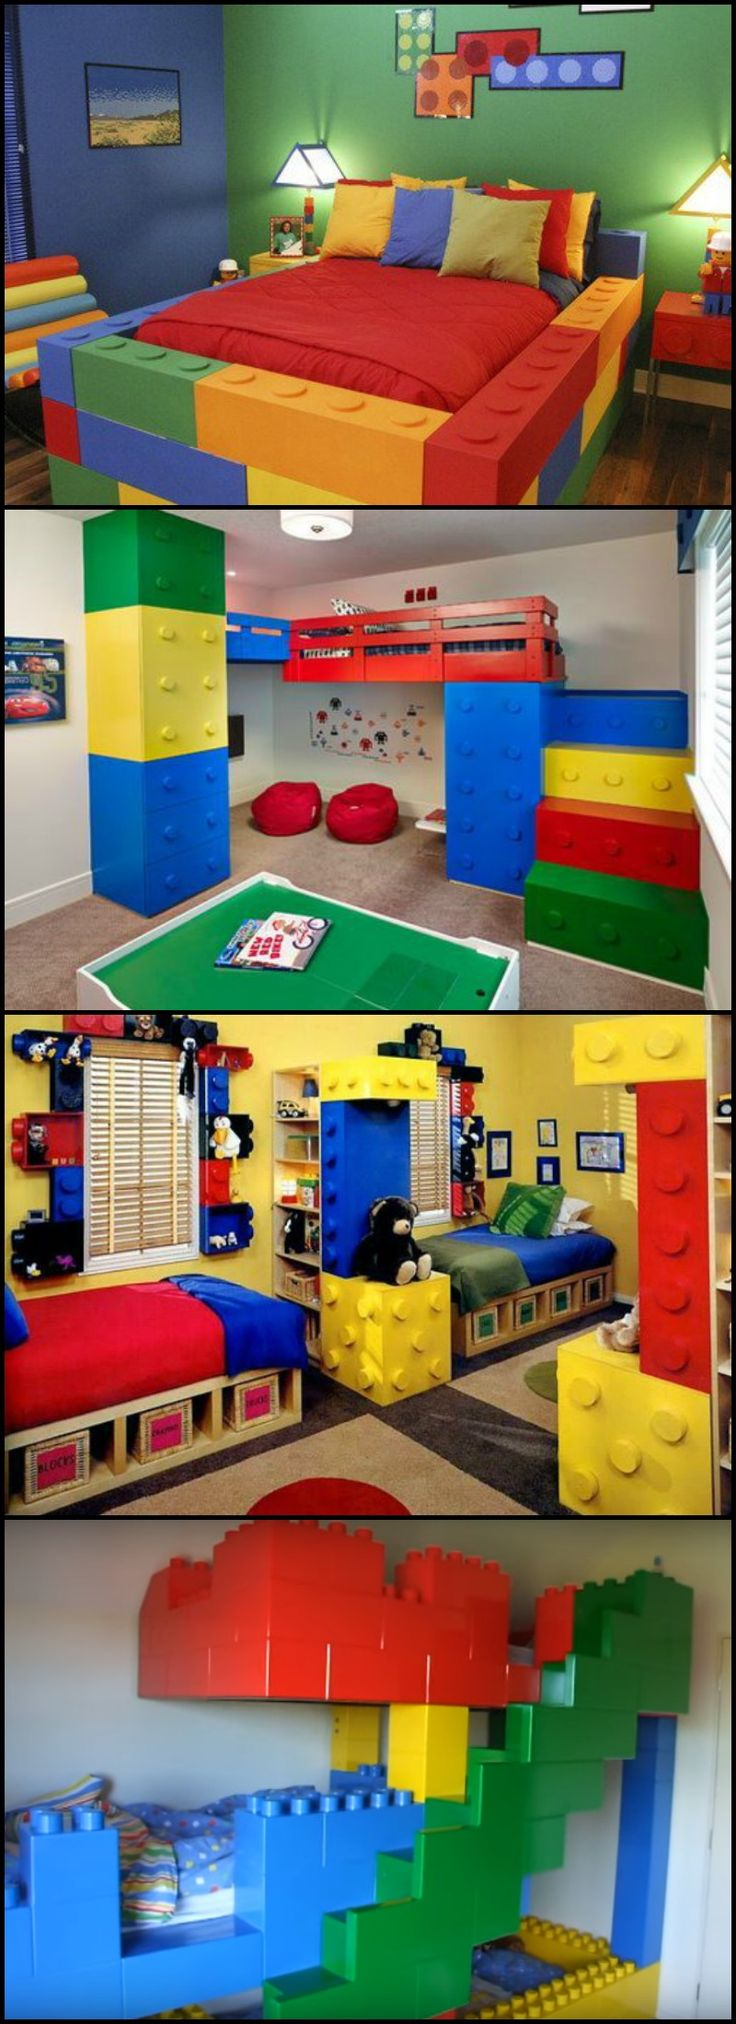 Lego Bedroom Wallpaper 17 Best Ideas About Lego Bedroom On Pinterest Lego Kids Rooms